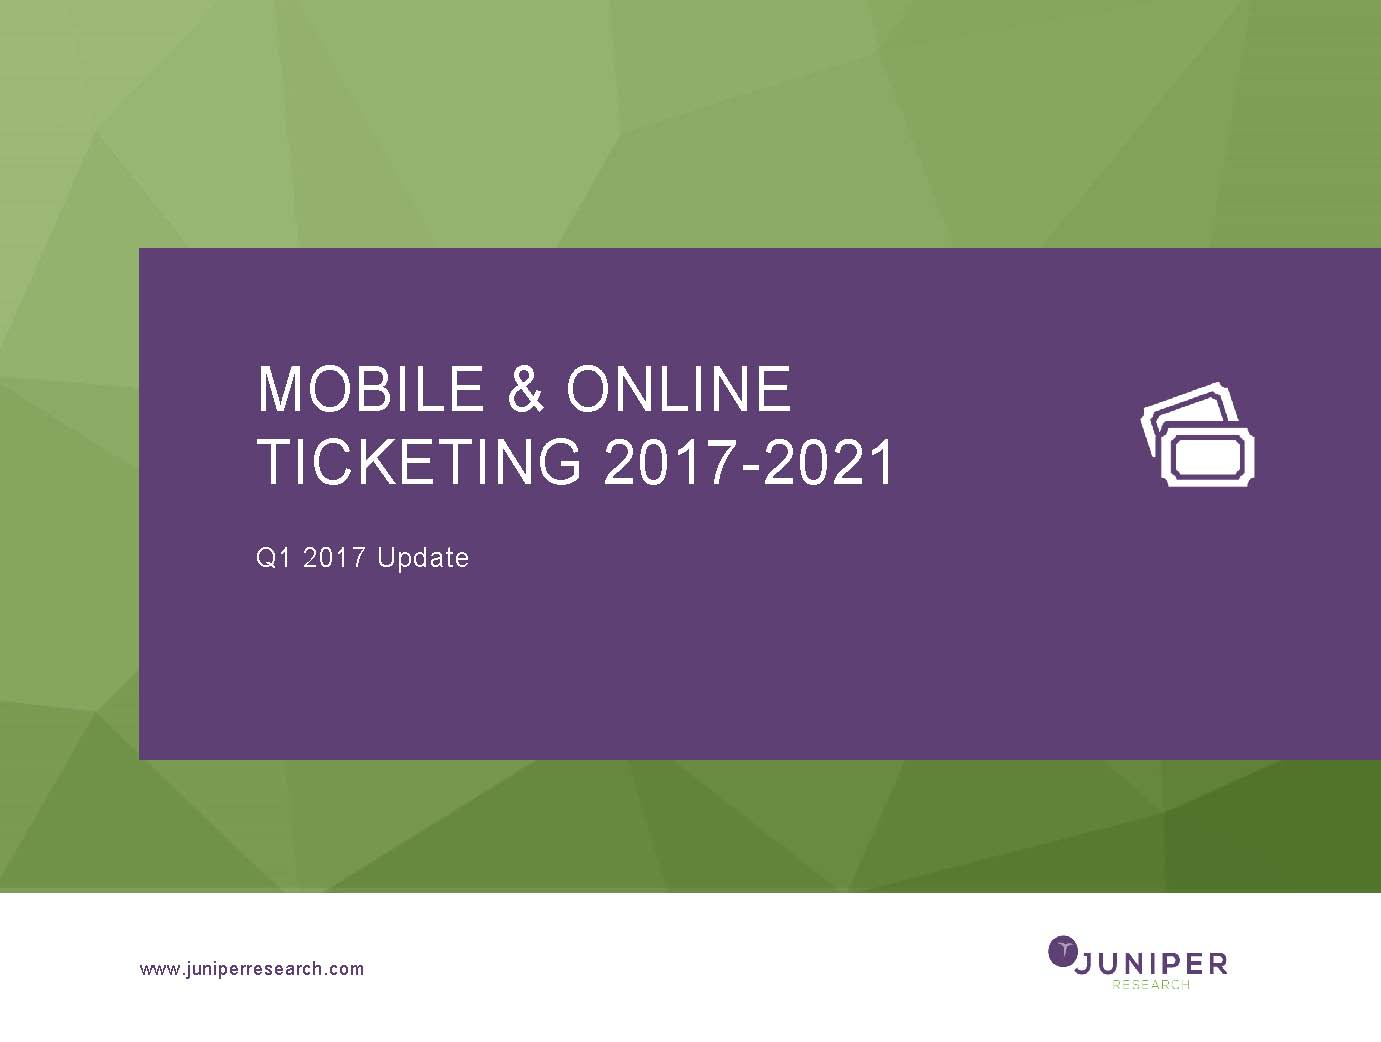 Mobile & Online Ticketing - Q1 2017